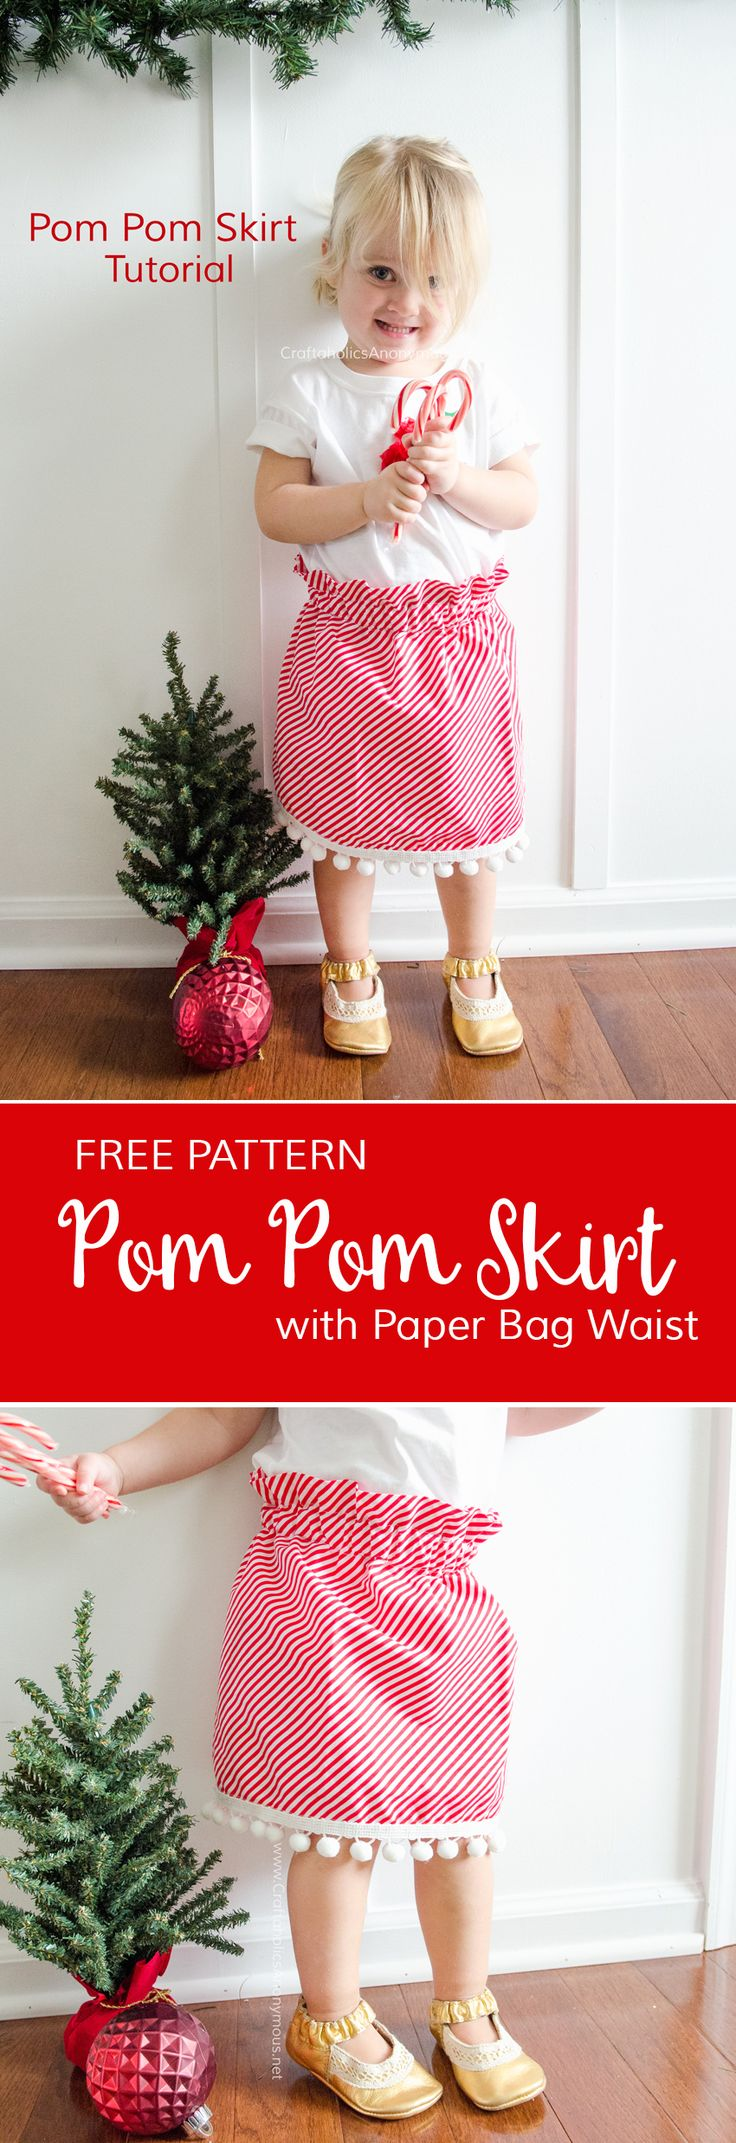 Free Sewing Pattern for Easy Pom Pom Skirt. Whips up in about 1 hour! Would be fun to make a mommy and me of this skirt for Christmas! www.CraftaholicsAnonymous.net